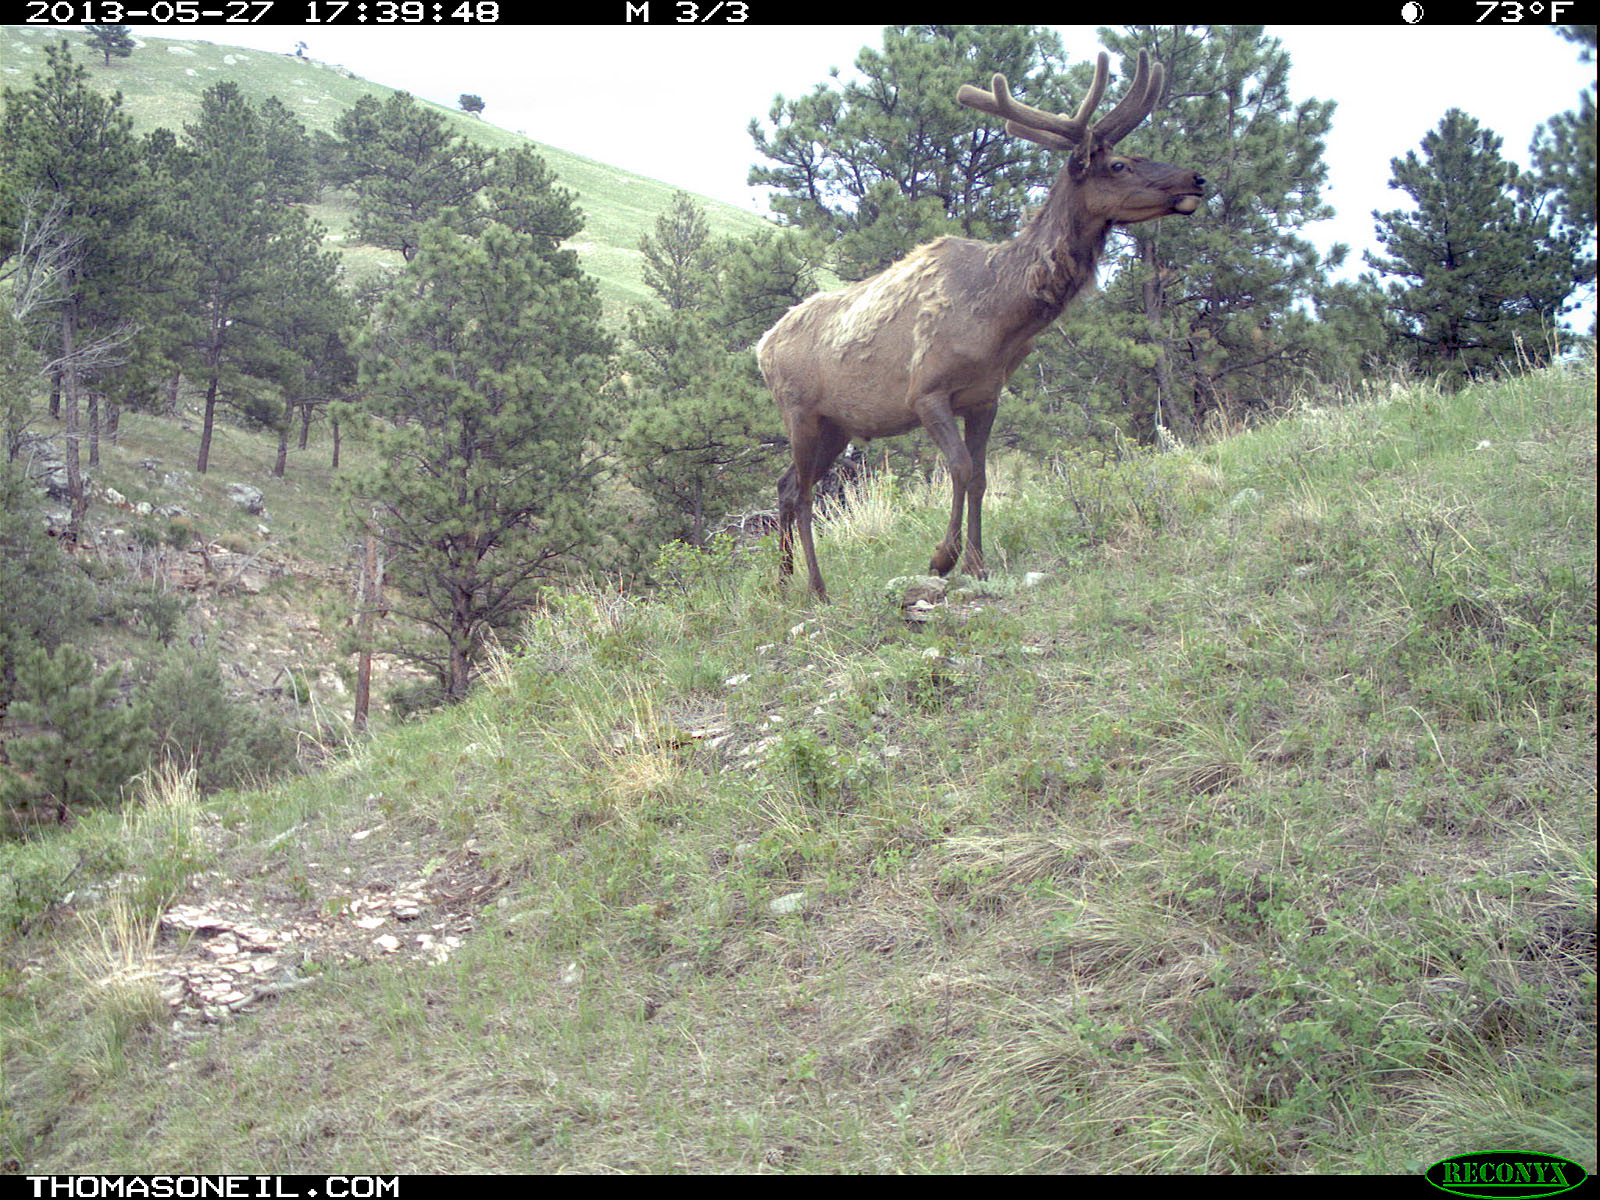 Elk on trail camera, Wind Cave National Park, South Dakota, May 27, 2013.  Click for next photo.